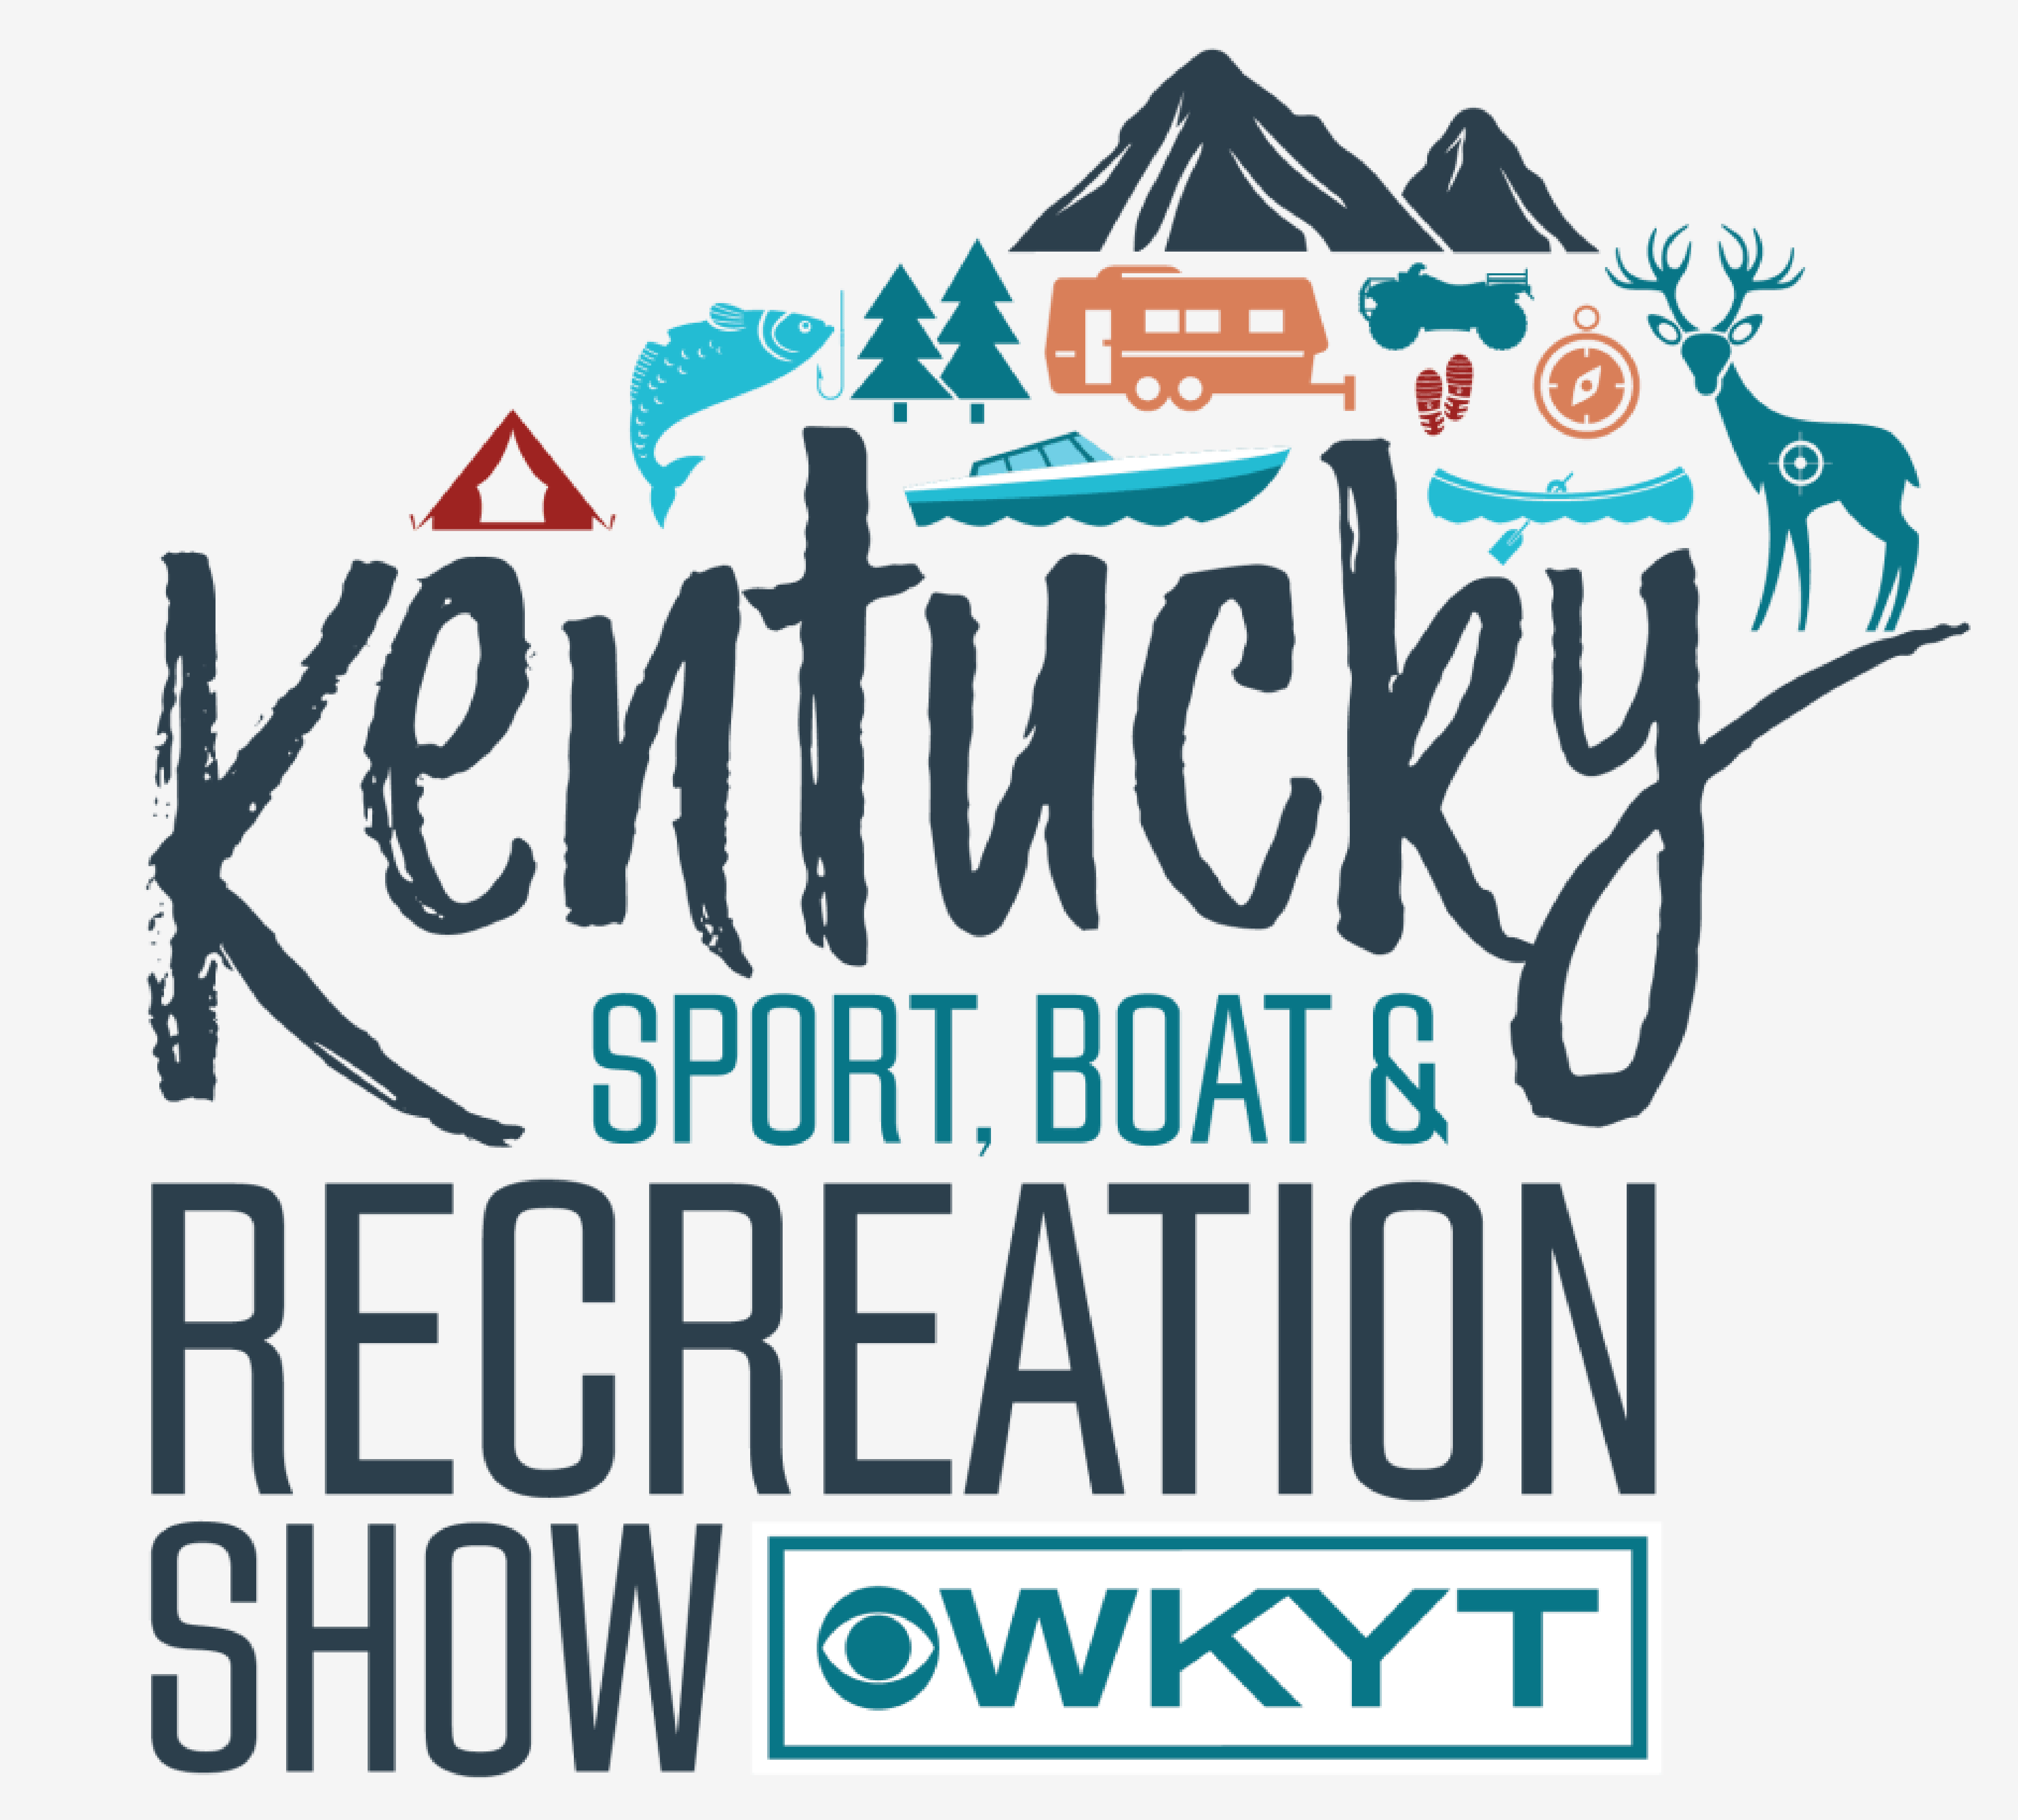 More Info for Kentucky Sport, Boat & Recreation Show